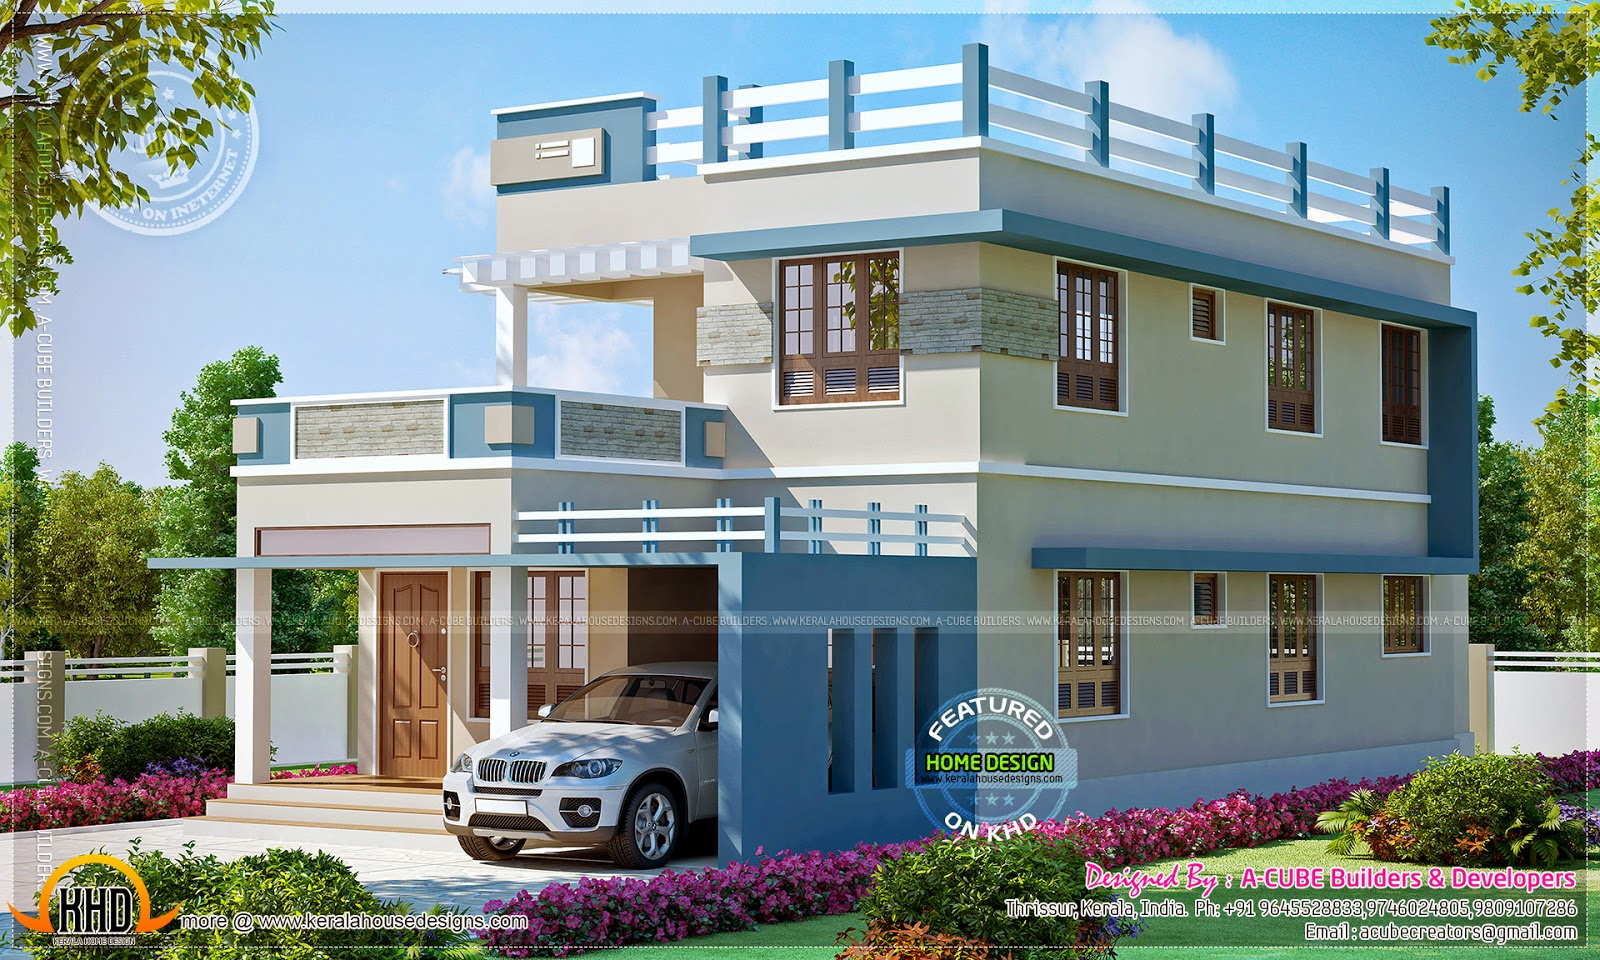 2260 square feet new home design kerala home design and floor plans - New house design ...